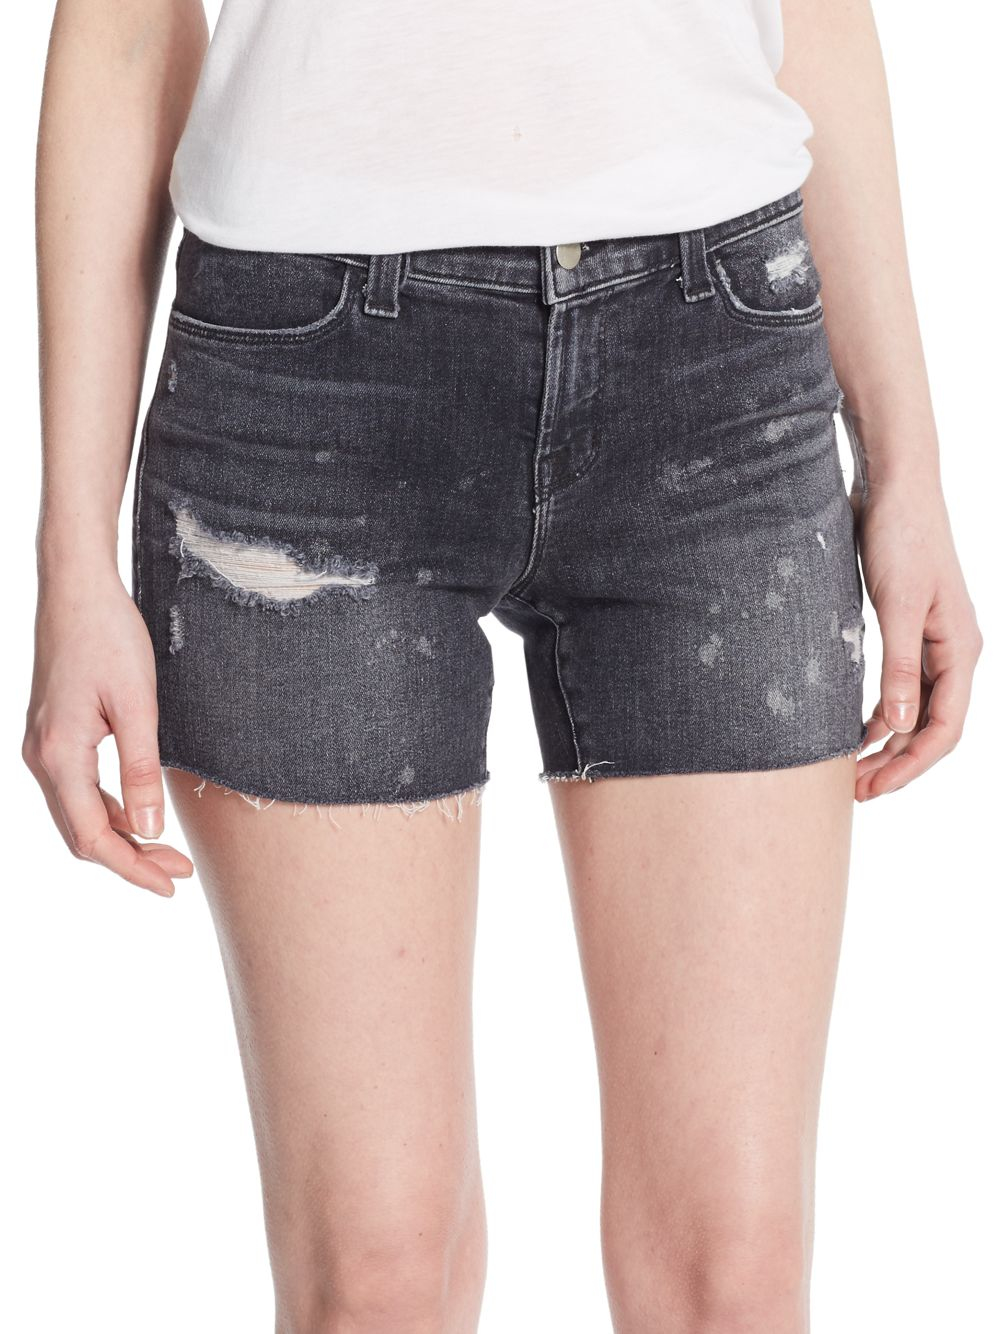 J brand Mia Mid-rise Distressed Denim Shorts in Black | Lyst